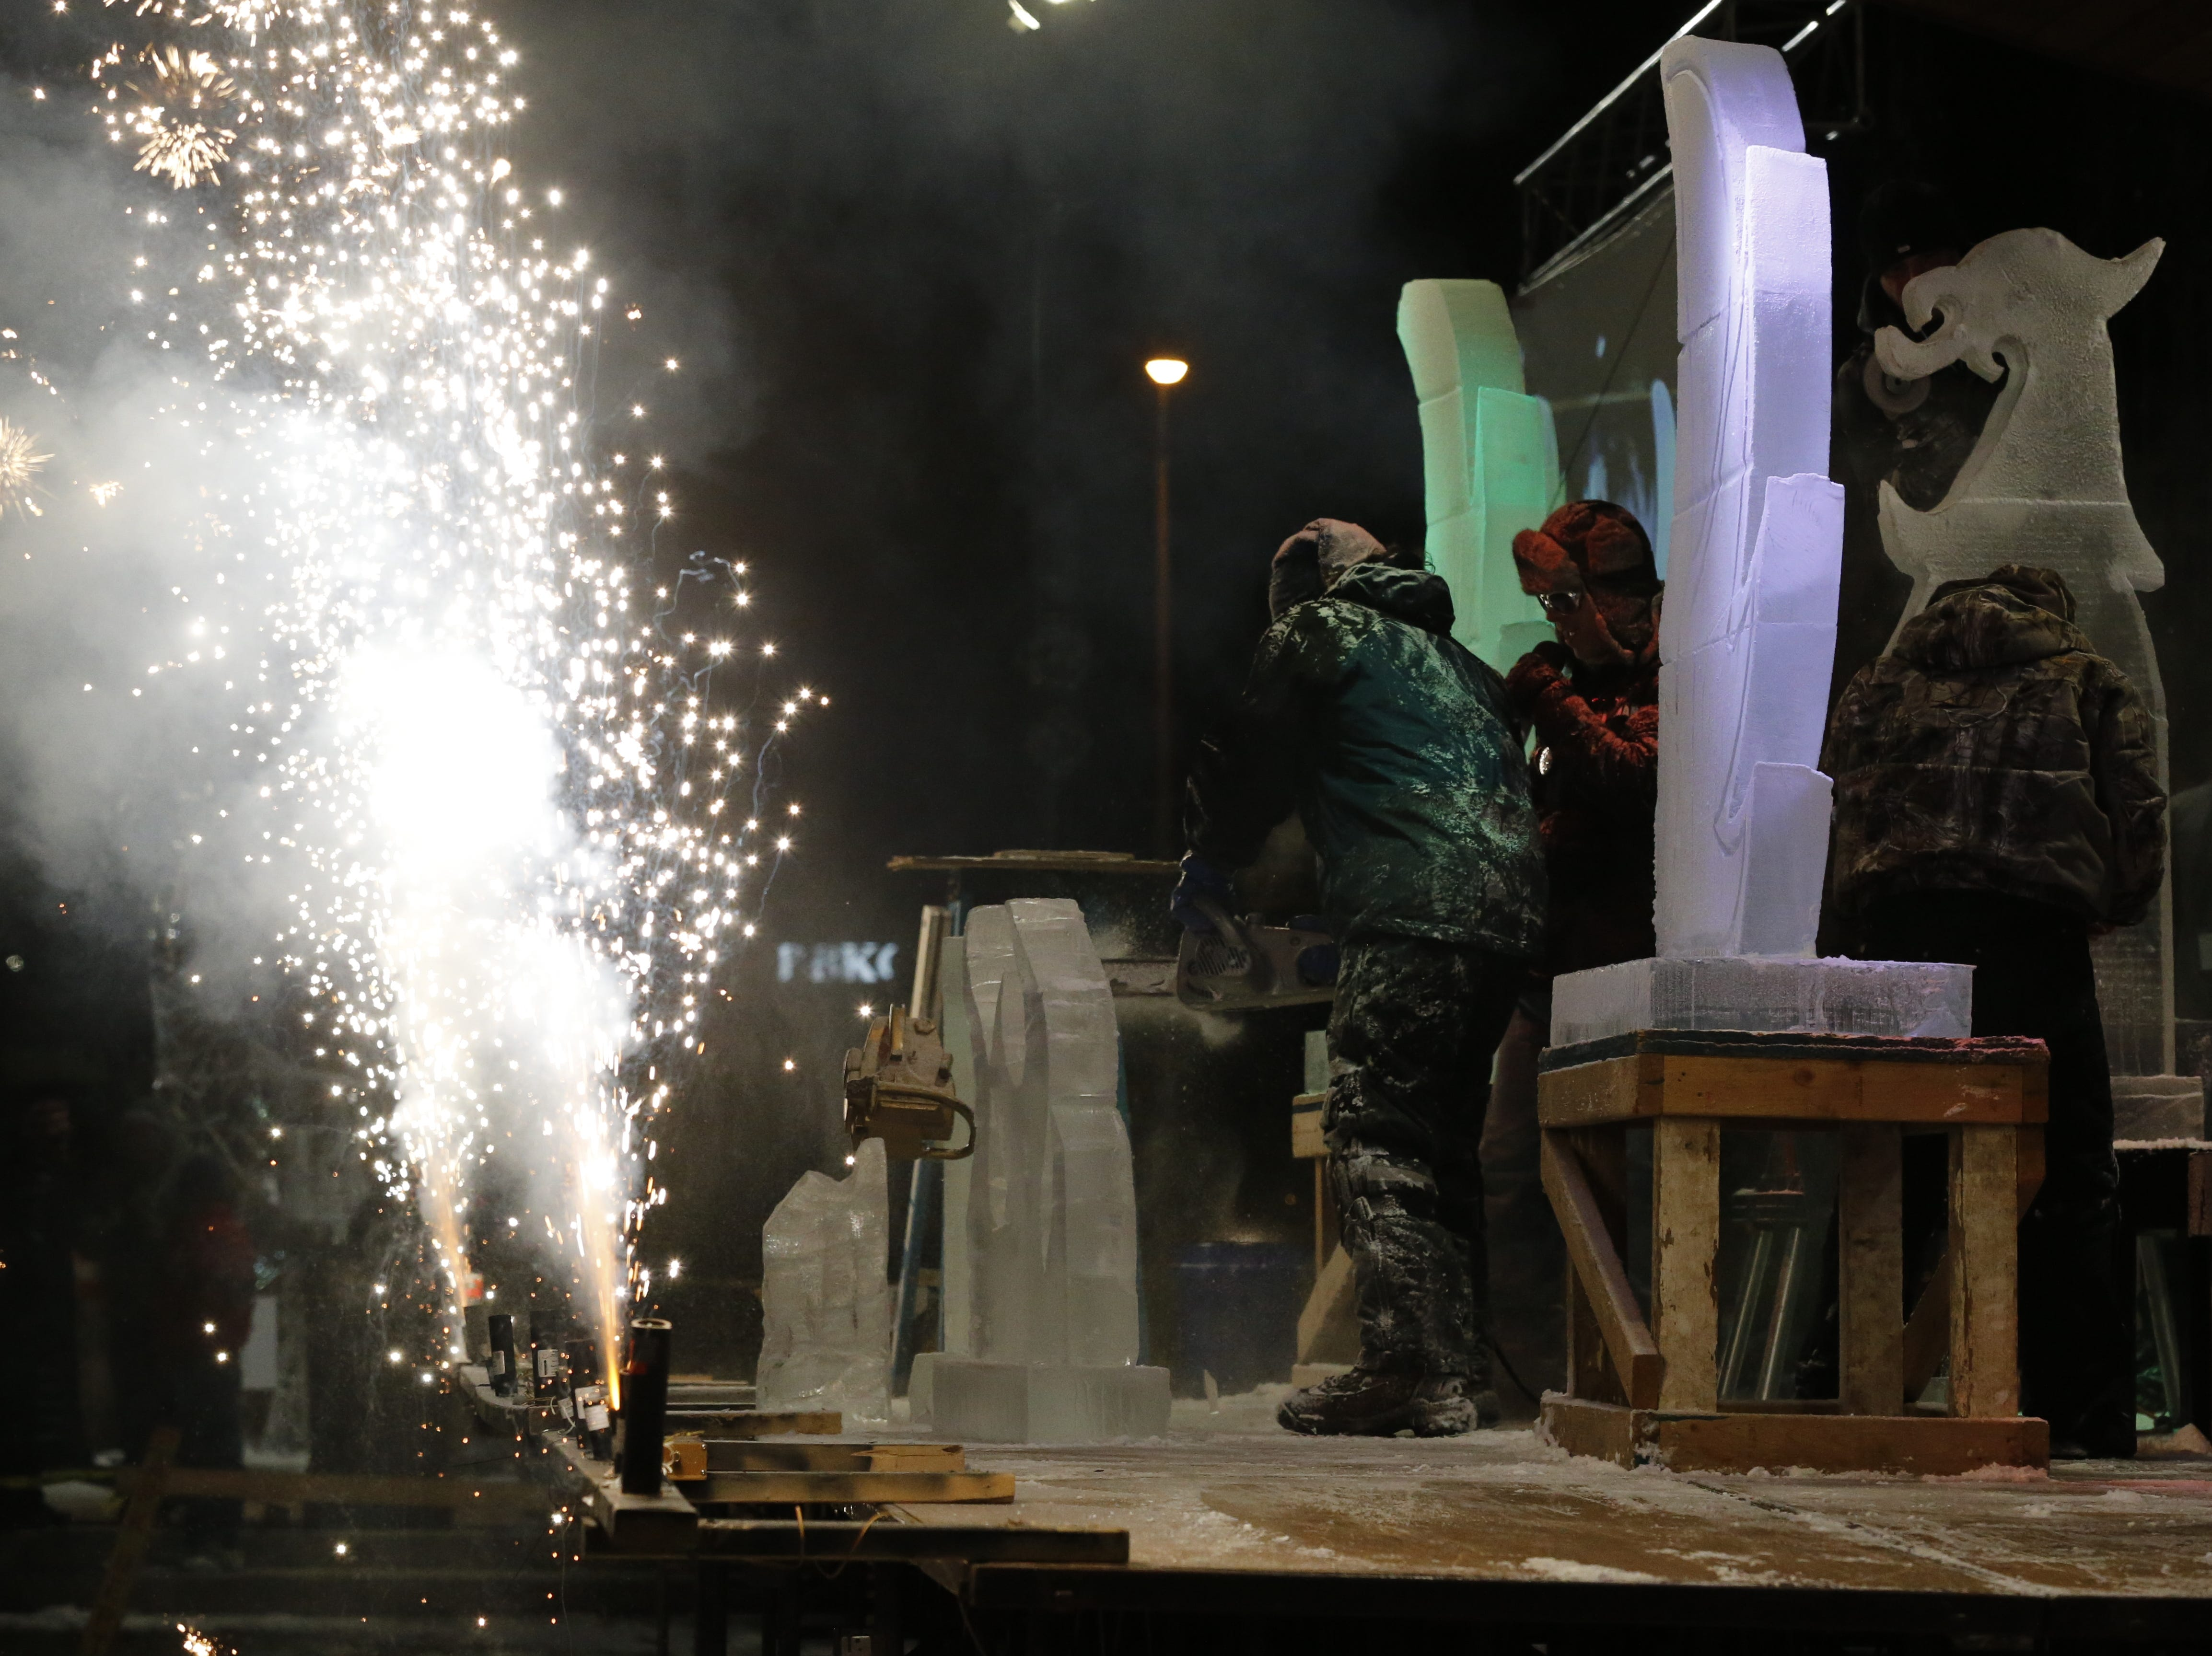 """There was plenty of ice and some fire in the form of fireworks during the """"Big Reveal"""" on Friday at the Meltdown Winter Ice Festival in Richmond."""